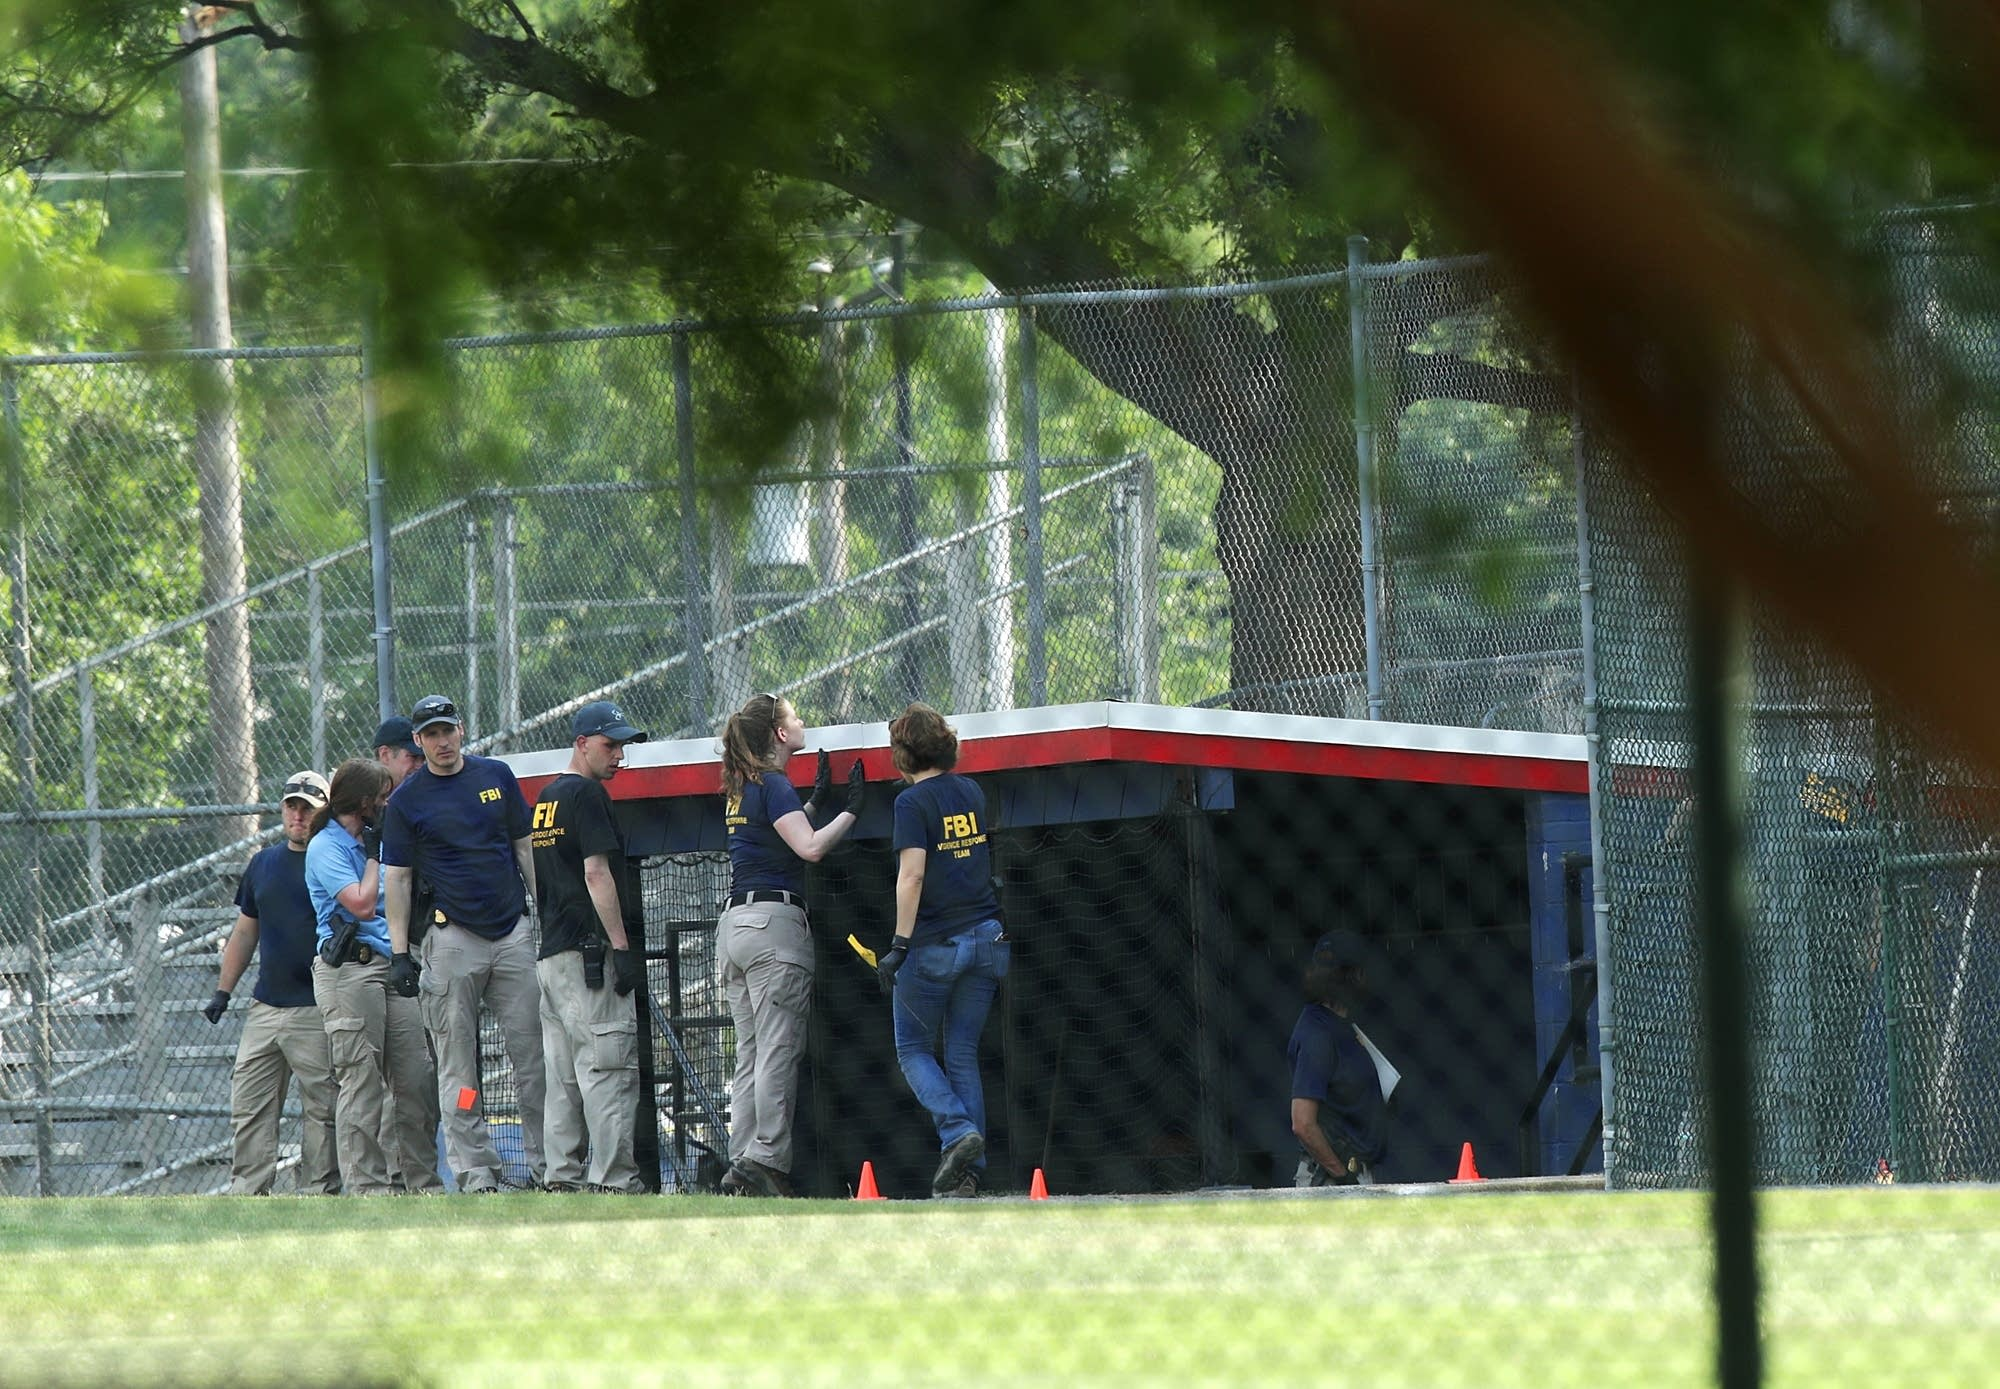 Scalise shooting: Playing congressional baseball game shows needed unity